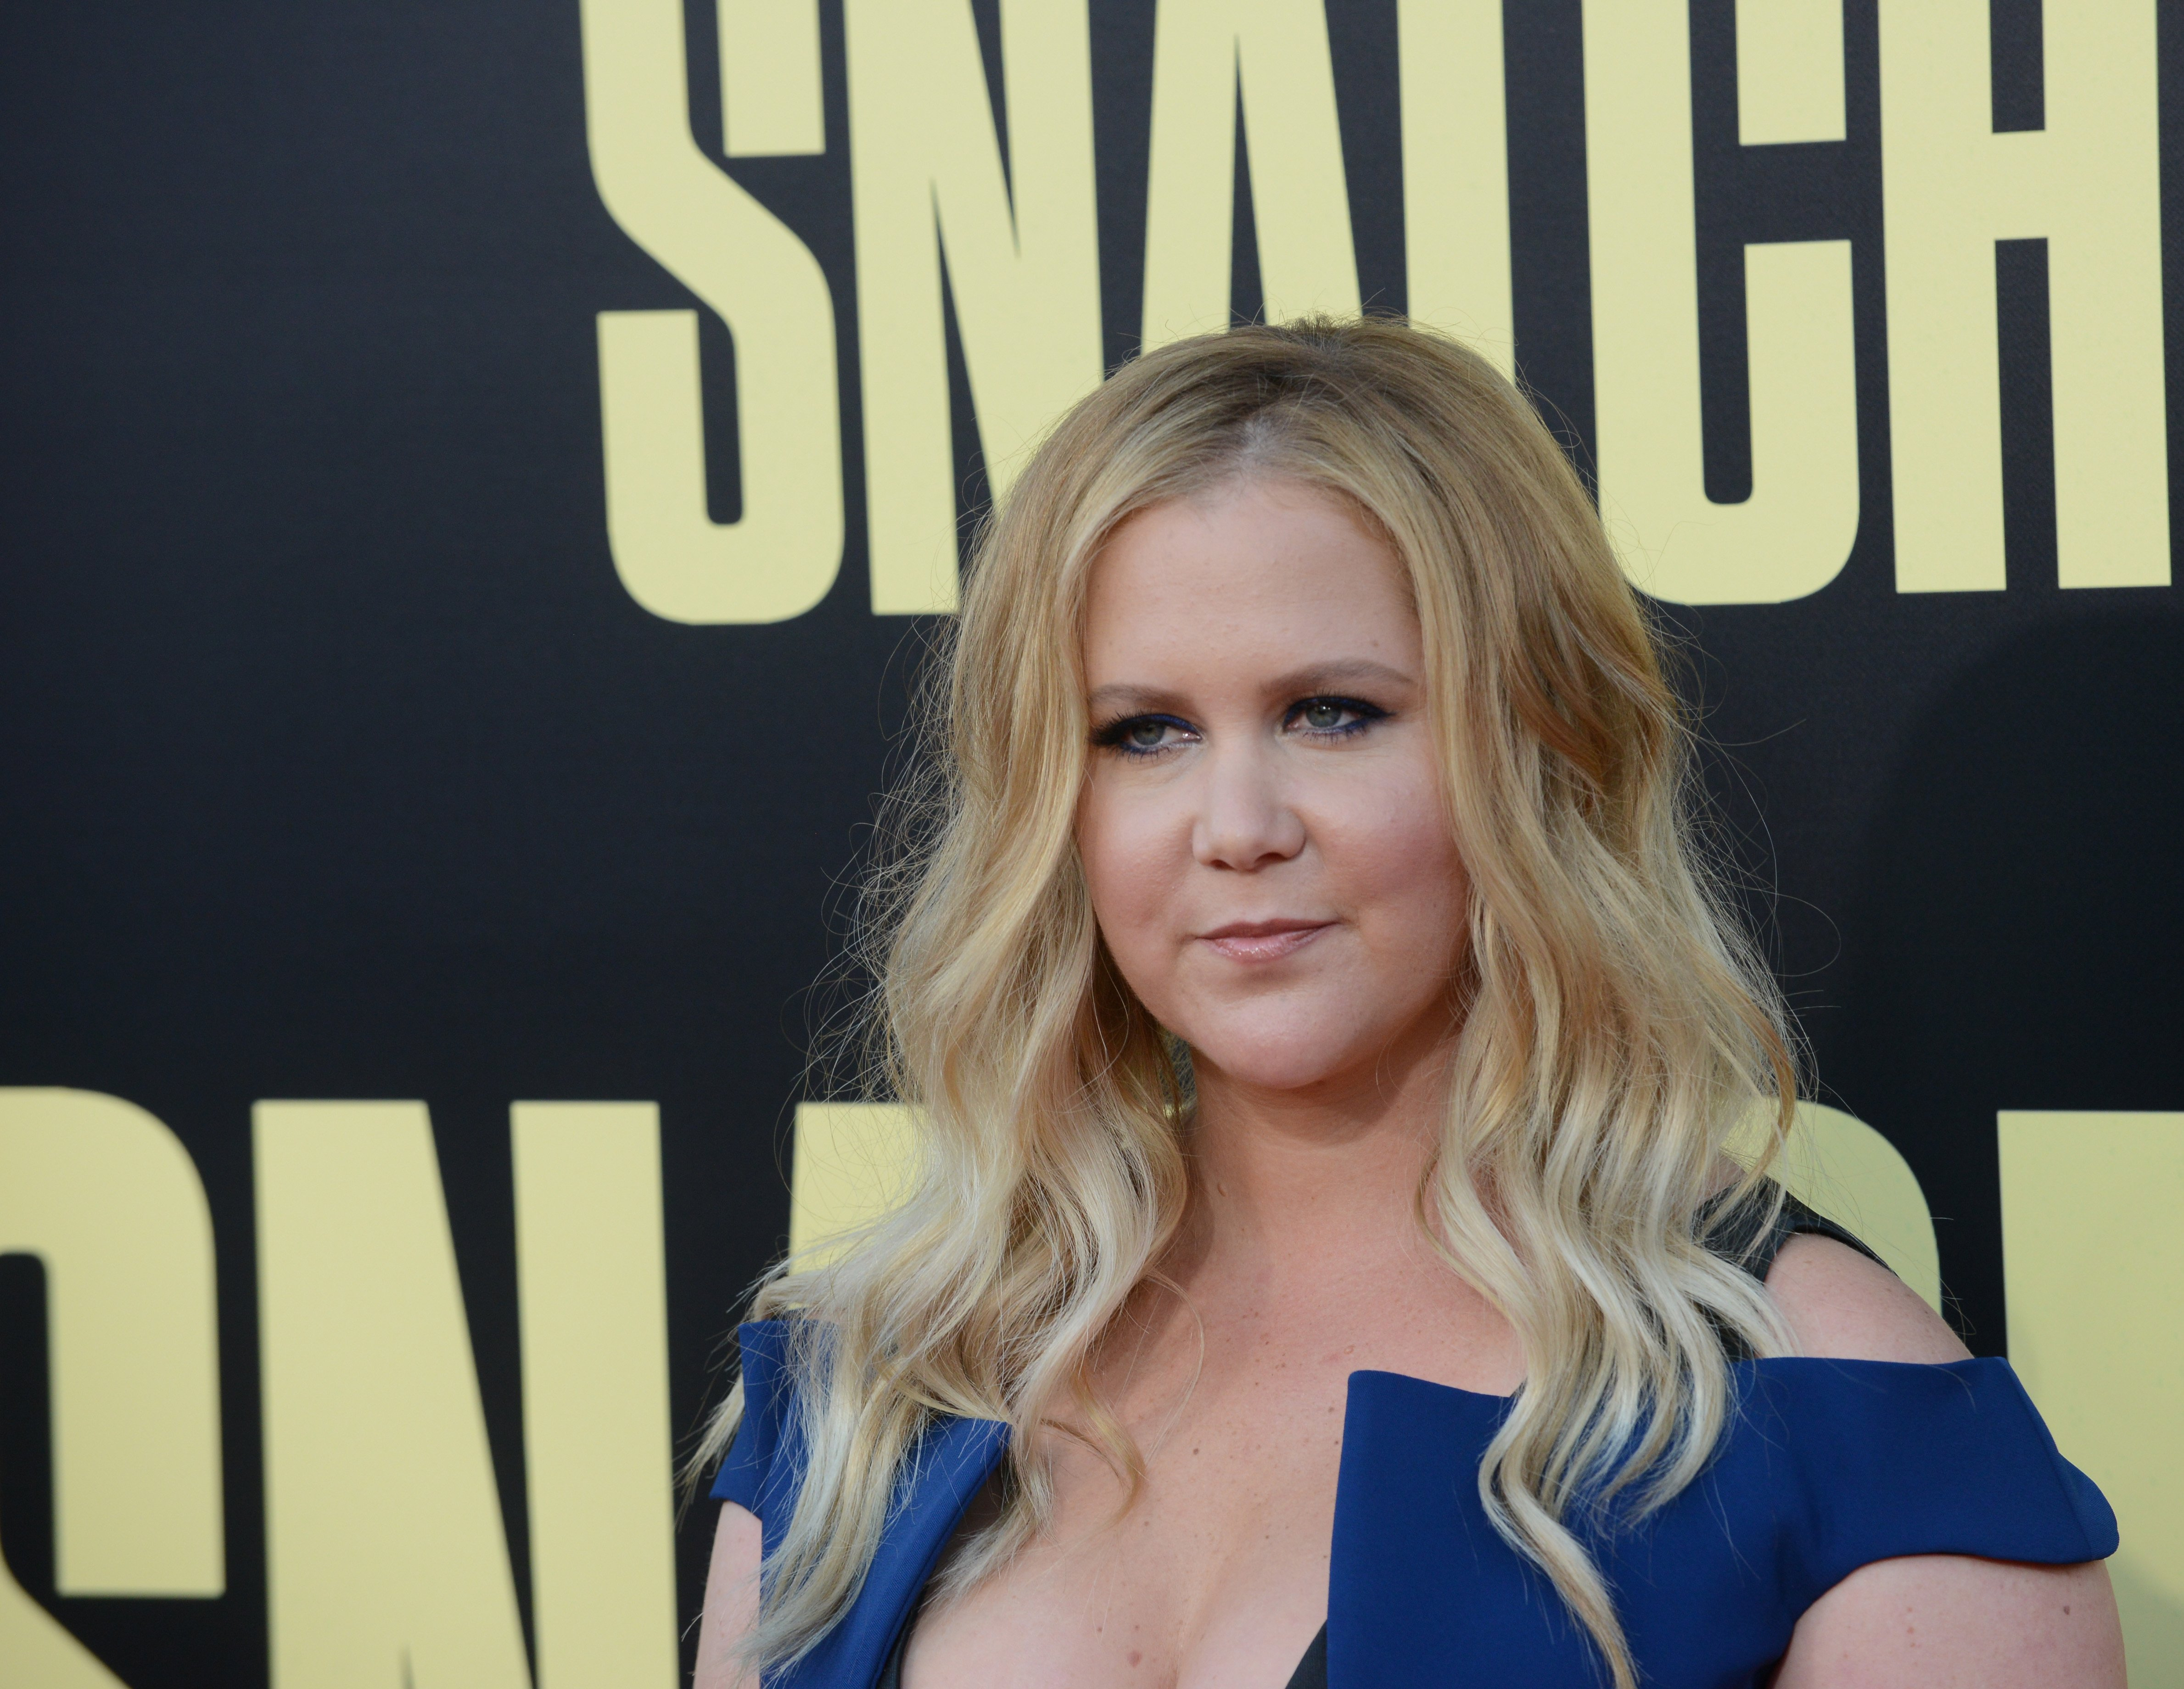 """Amy Schumer pictured at Premiere Of 20th Century Fox's """"Snatched,"""" 2017, California. 